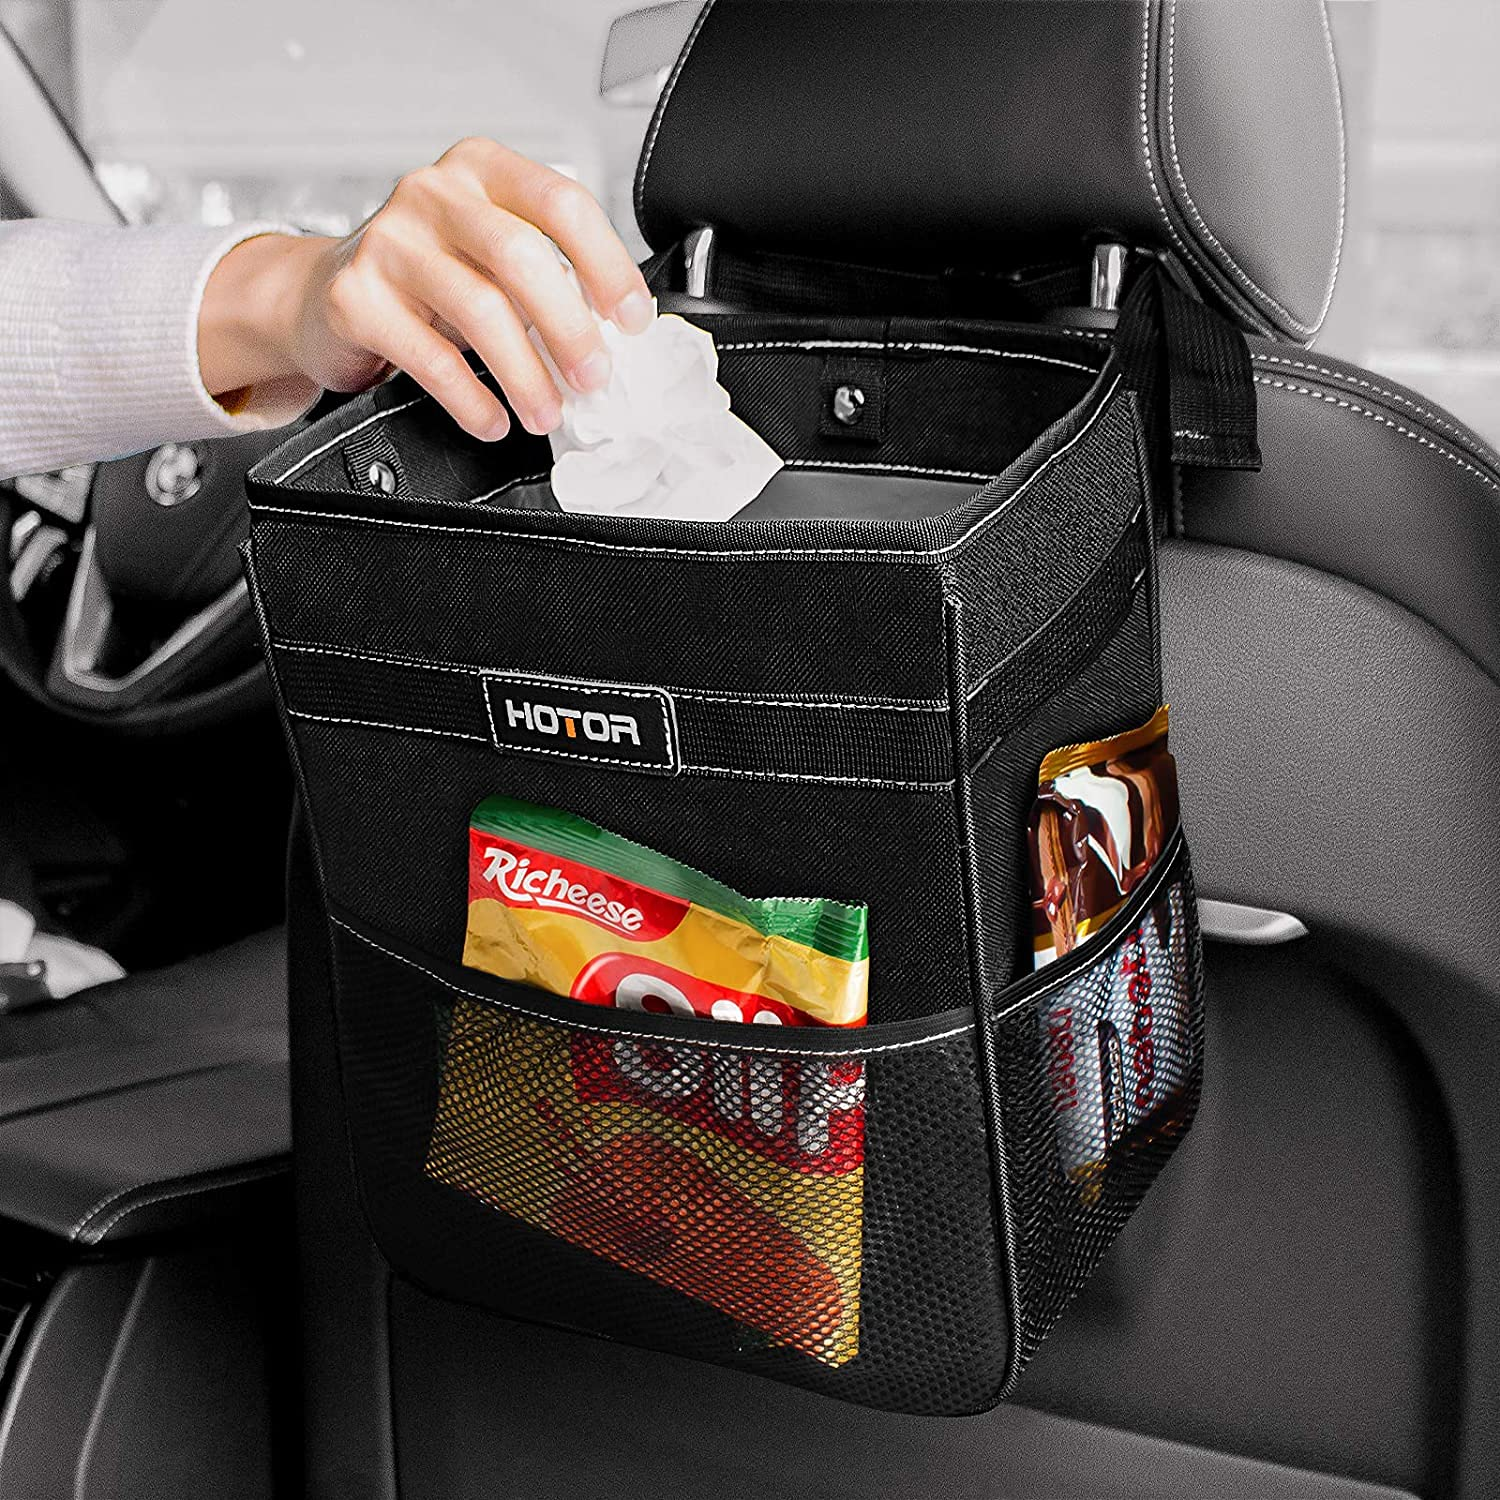 2021 autumn and winter new GENERIC Upgraded Car Trash Can Max 56% OFF with 1 and Storage Pockets 3 Lid